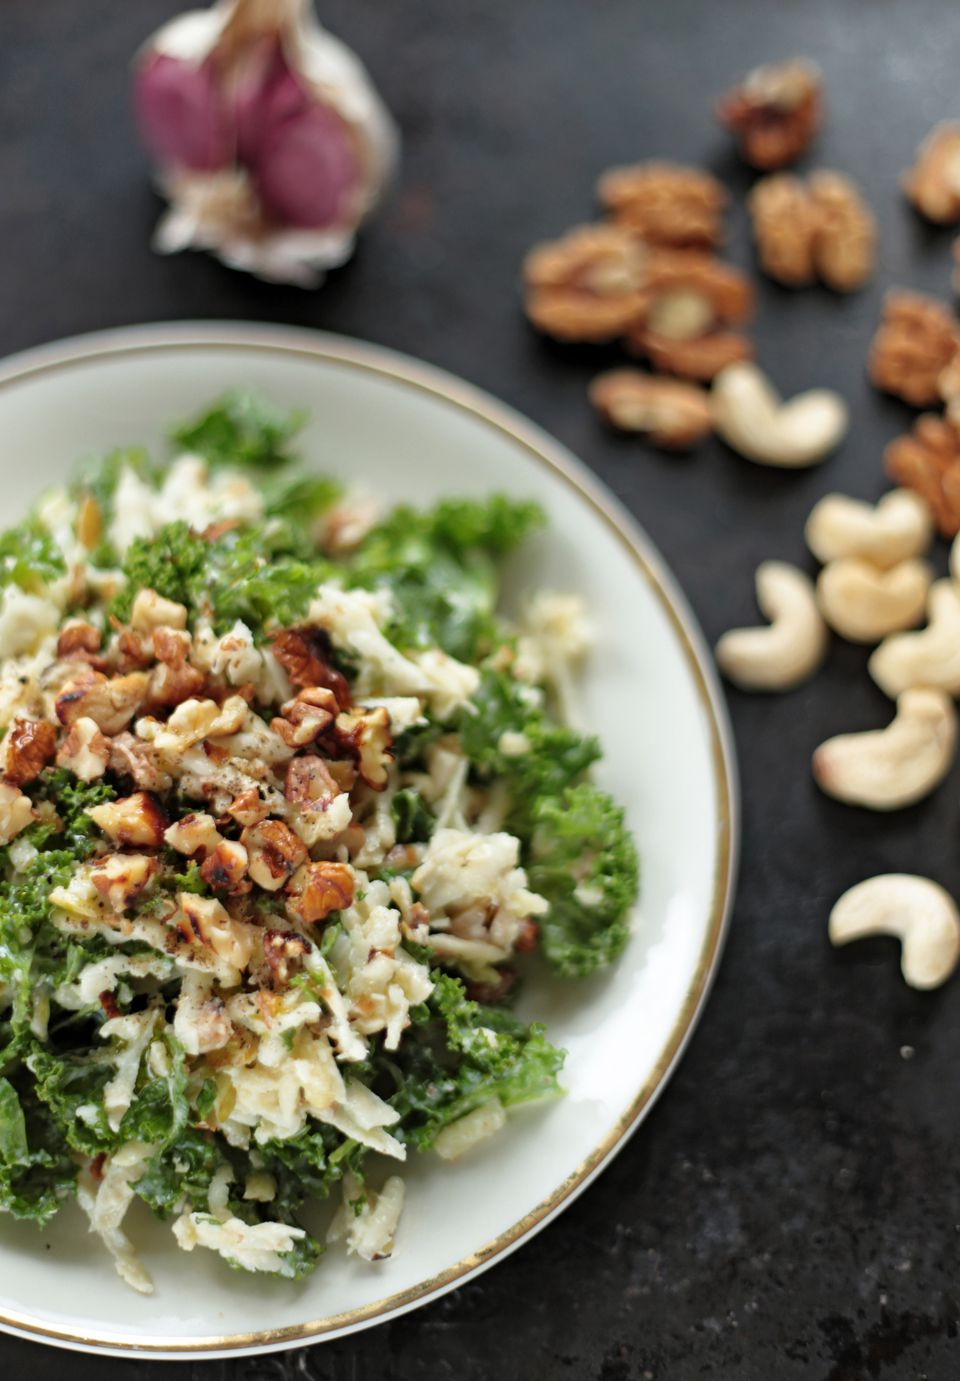 Waldorf salad on kale